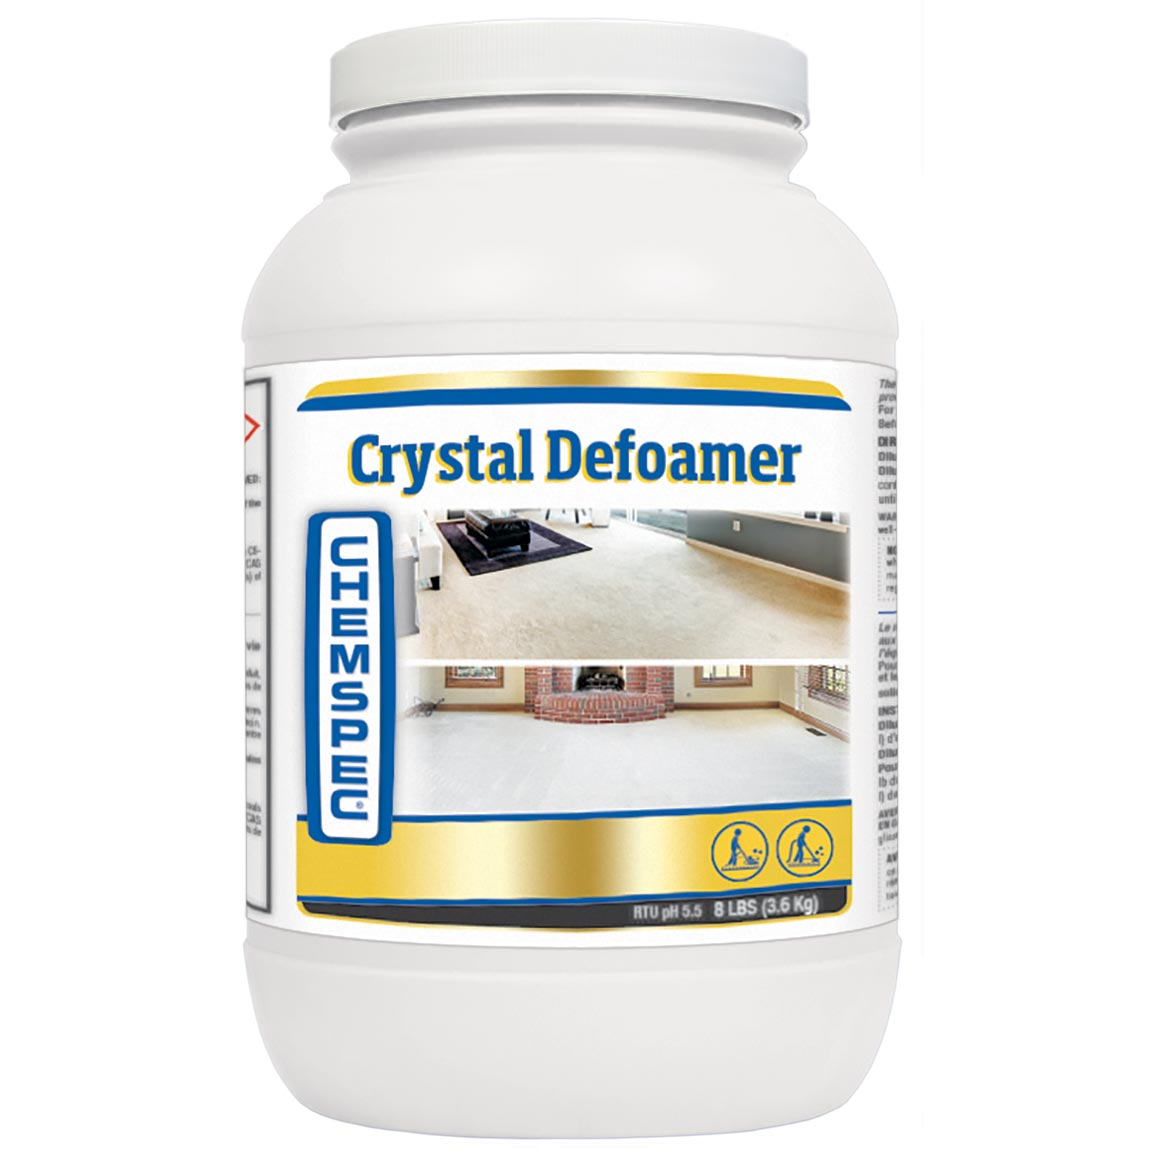 Chemspec C-CD32 Crystal Defoamer 8 lbs Jar EACH Powder UPC 091965010807